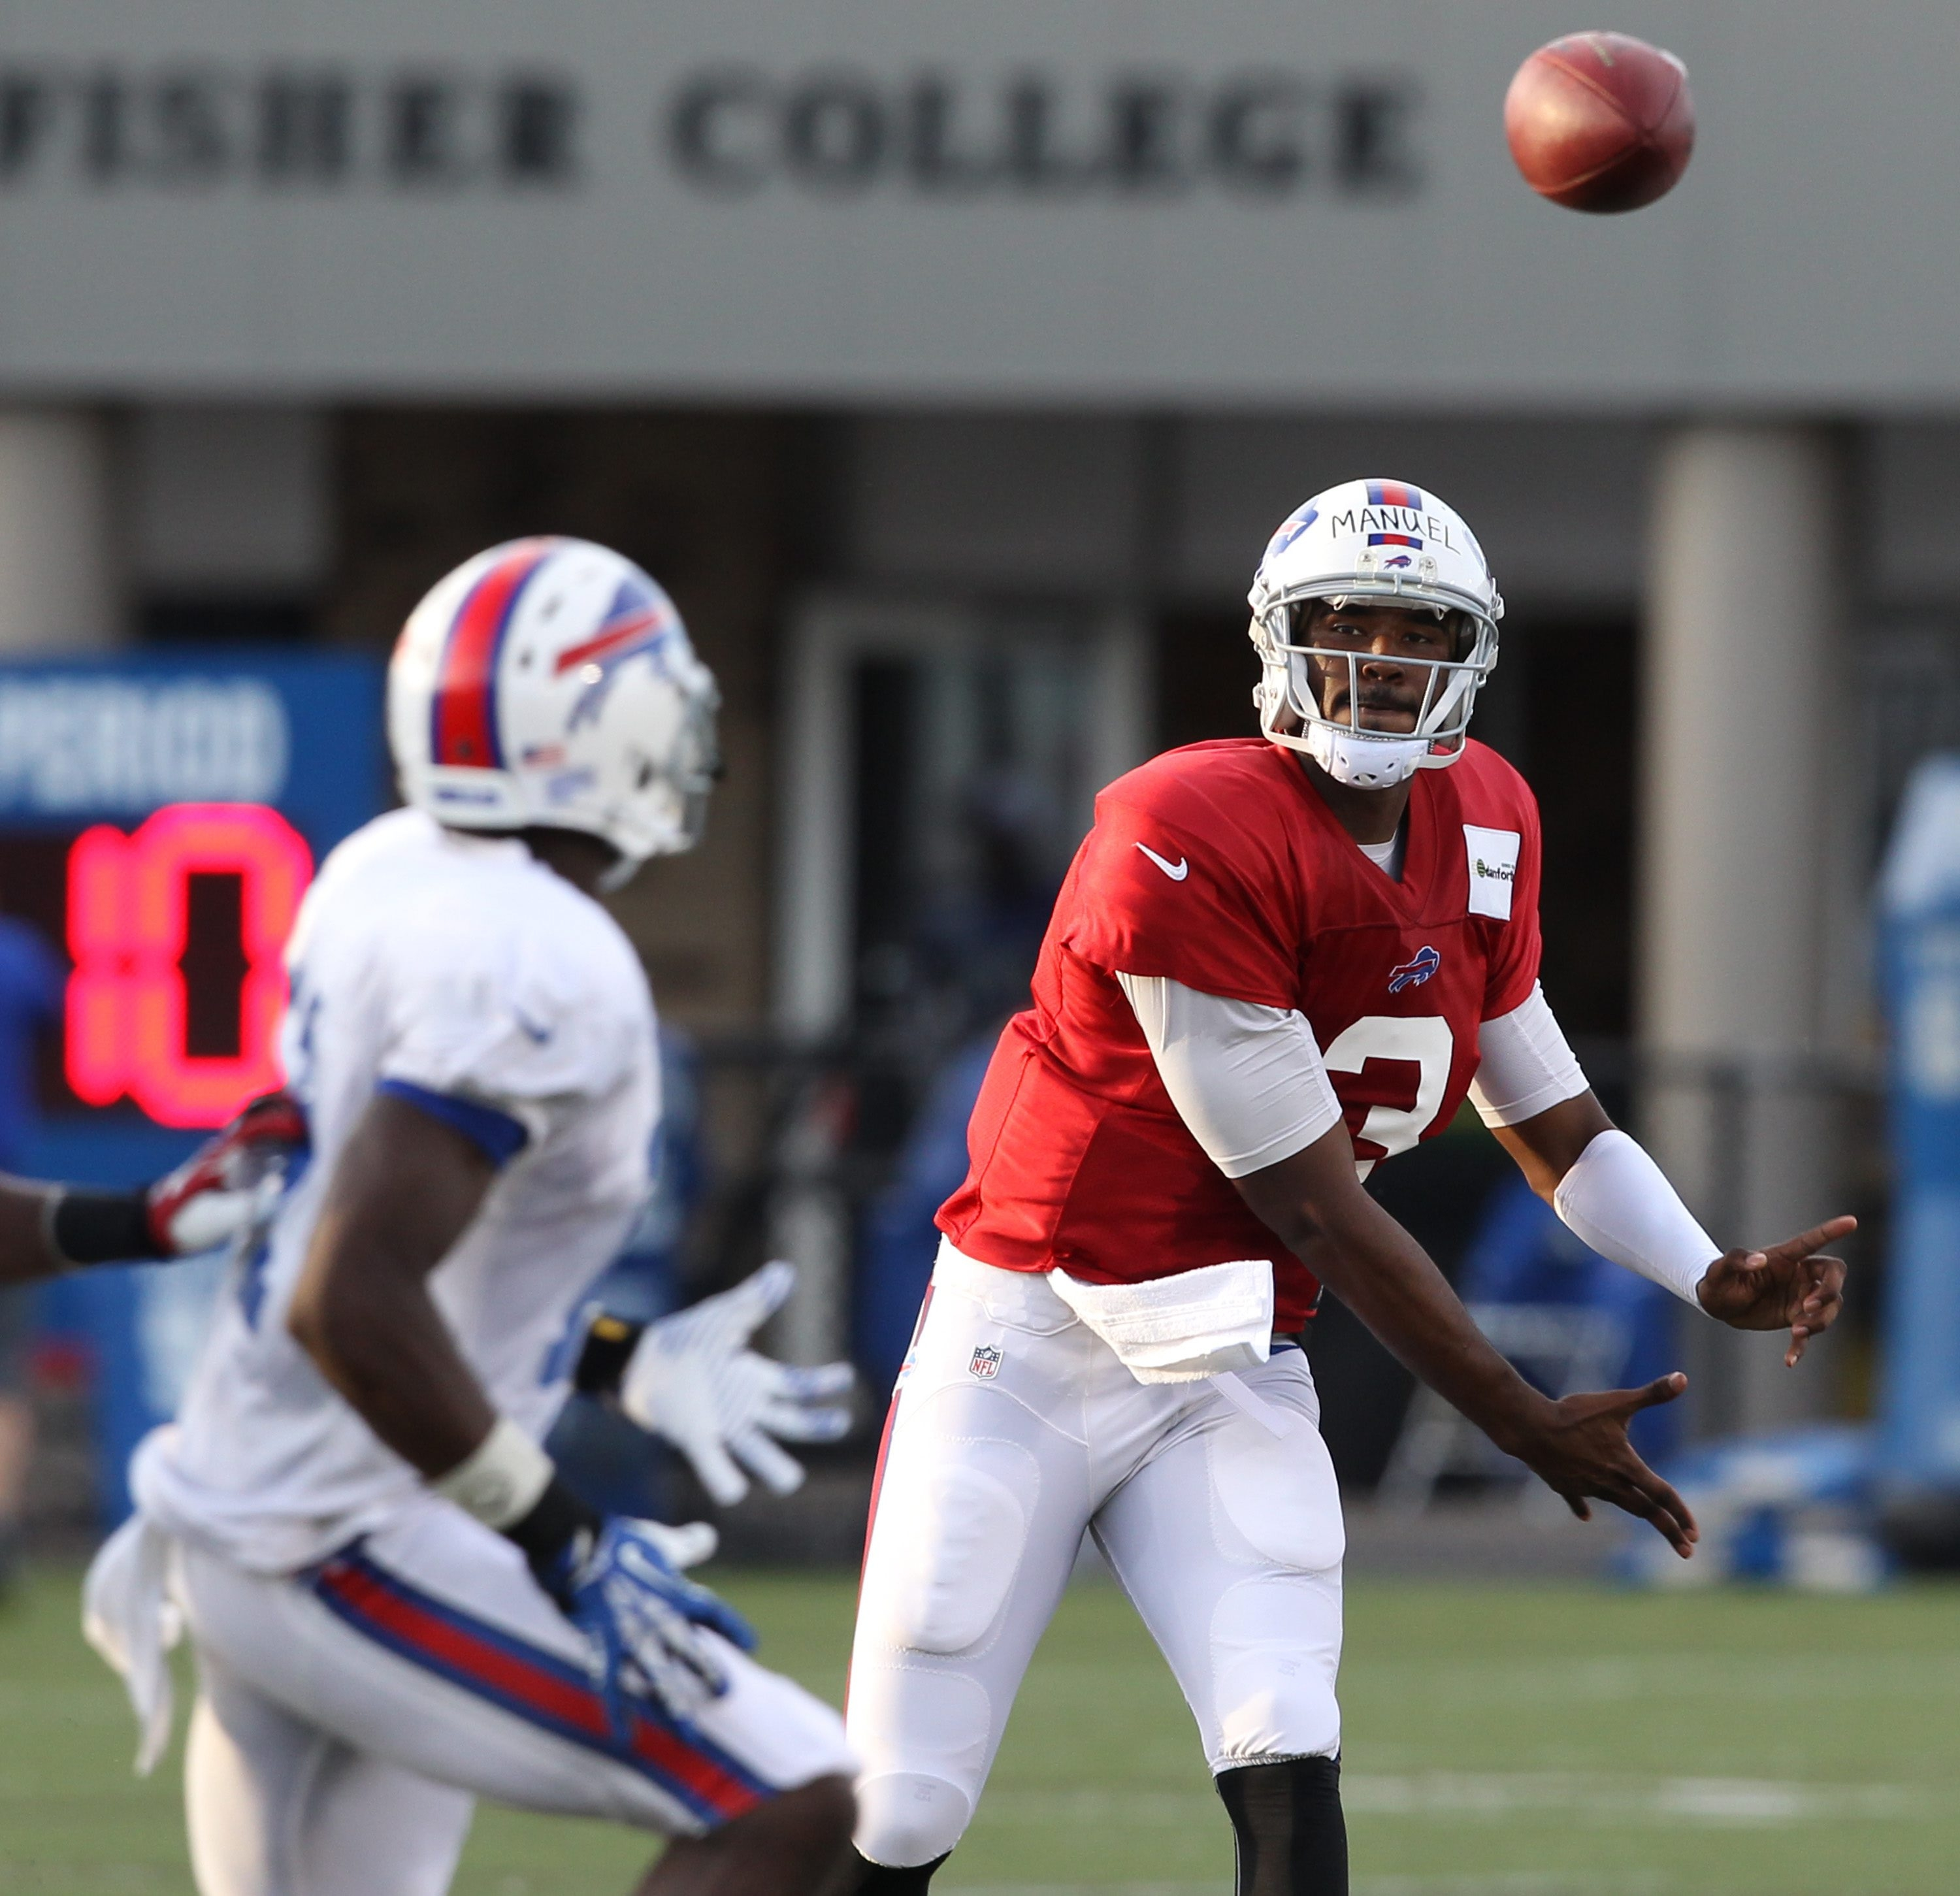 Bills quarterback EJ Manuel took all the snaps with the first team in the scrimmage Monday night.